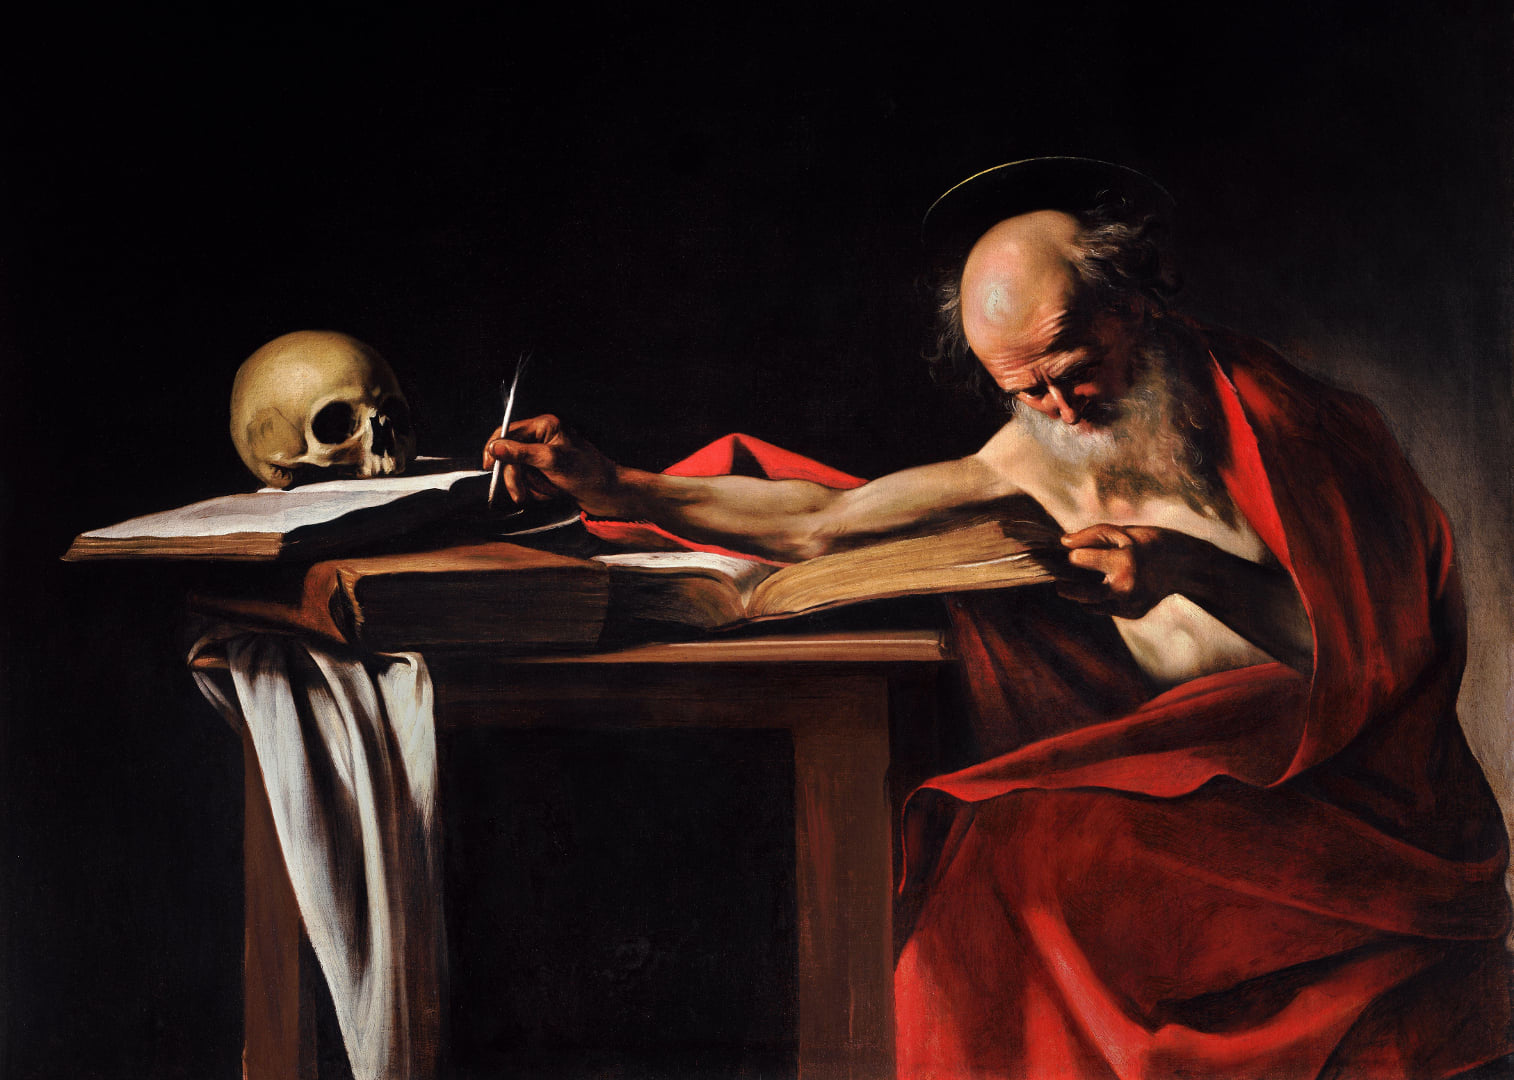 Saint Jerome Writing by Caravaggio, Galleria Borghese, Rome